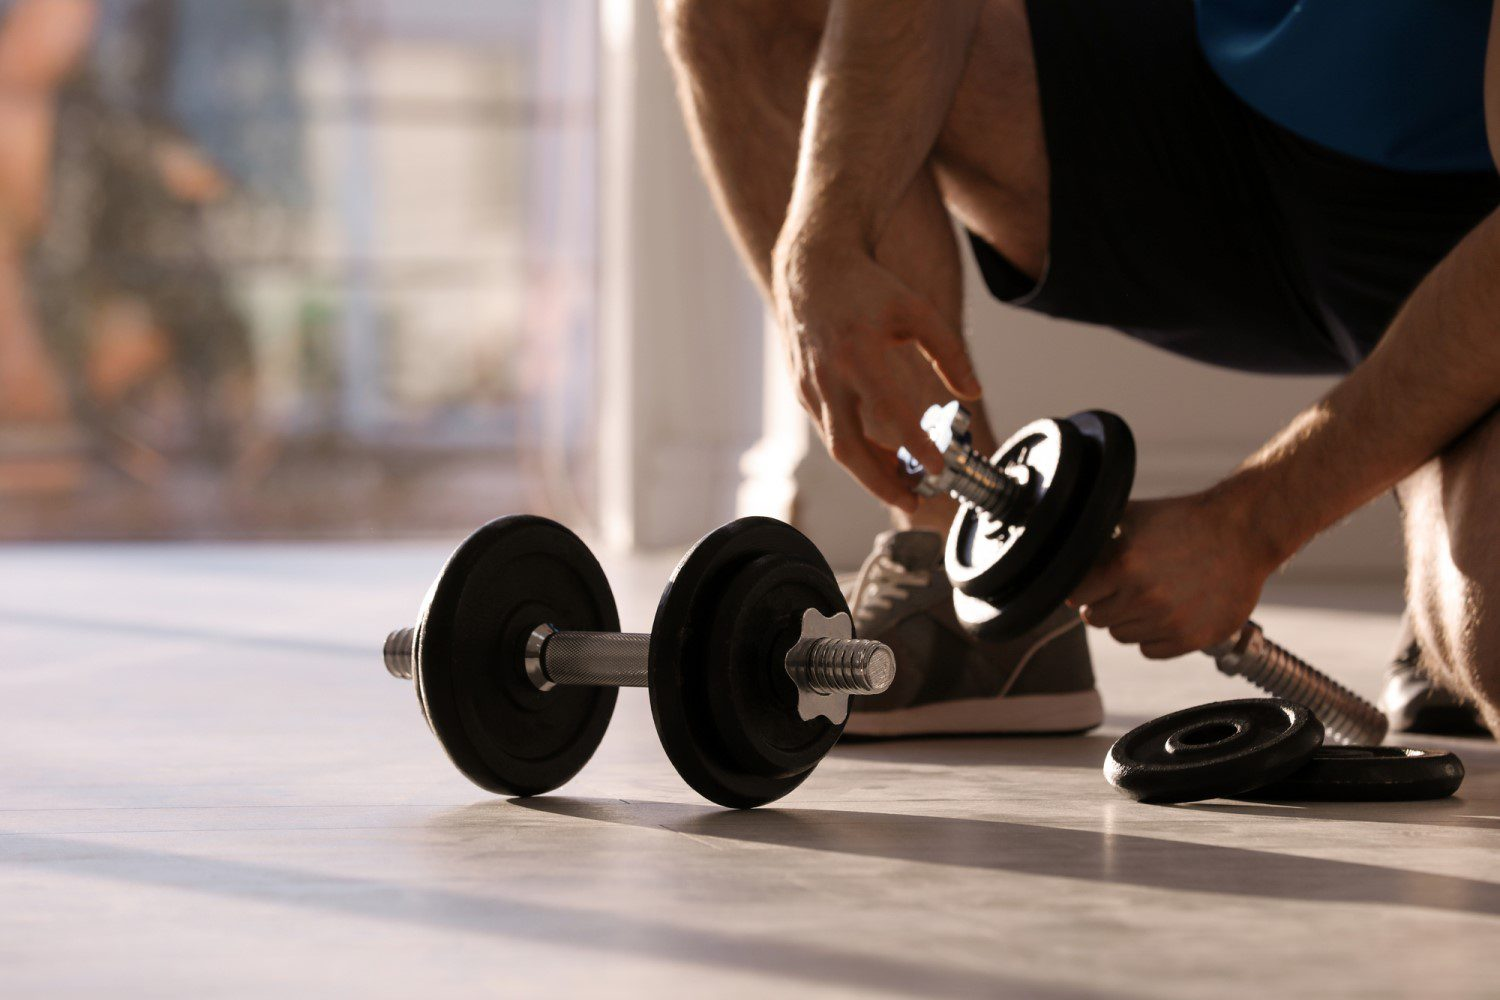 Man training his biceps in his living room with a pair of adjustable dumbbells